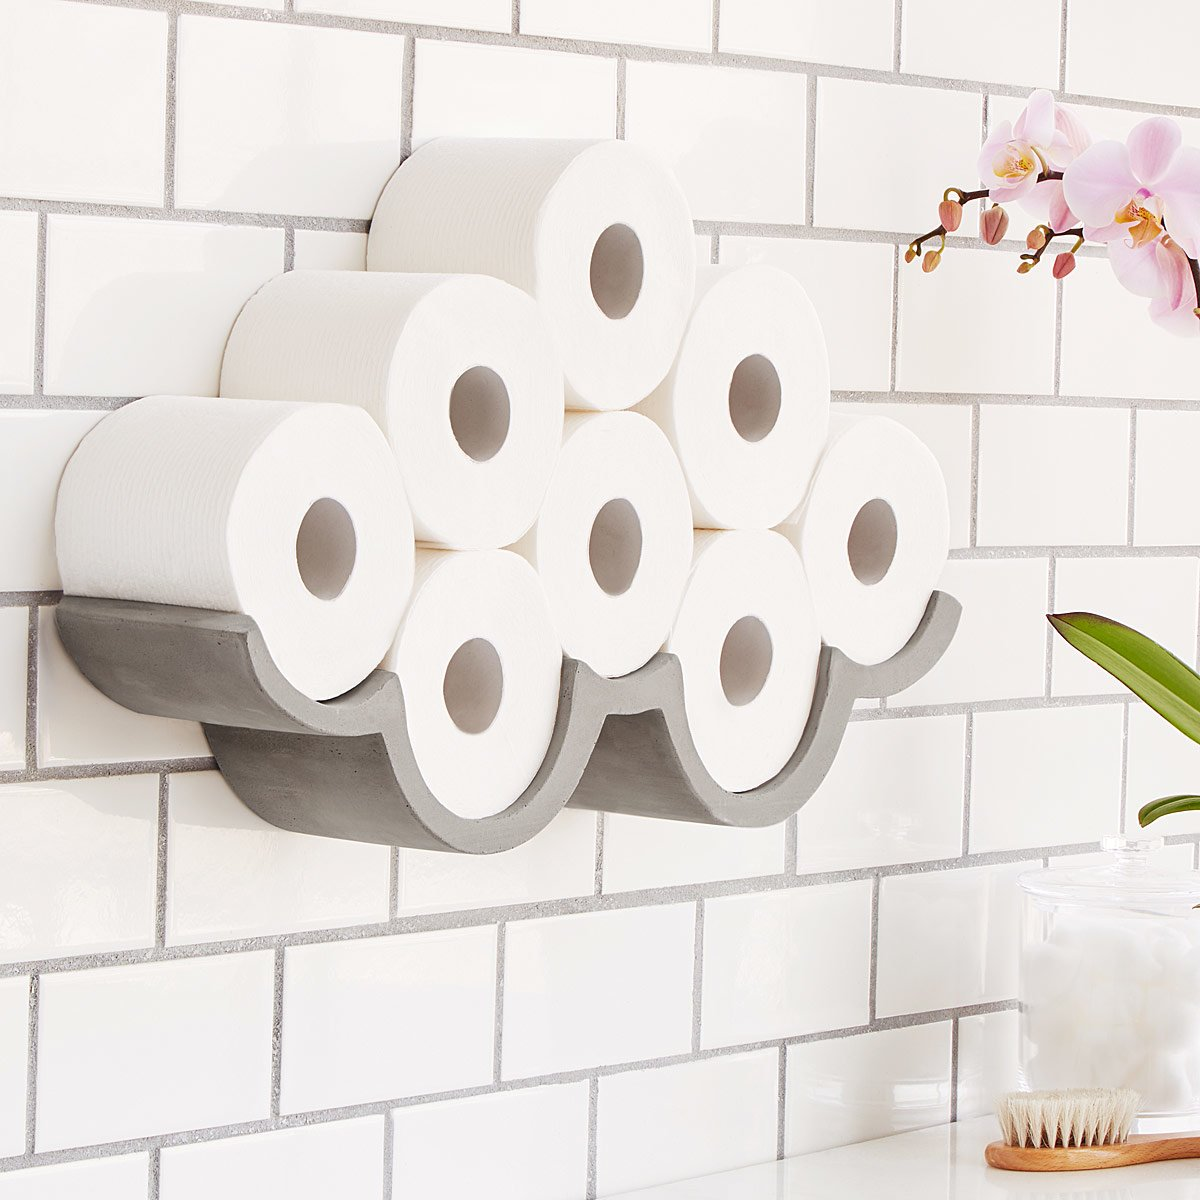 Beau Cloudy Day Toilet Paper Storage